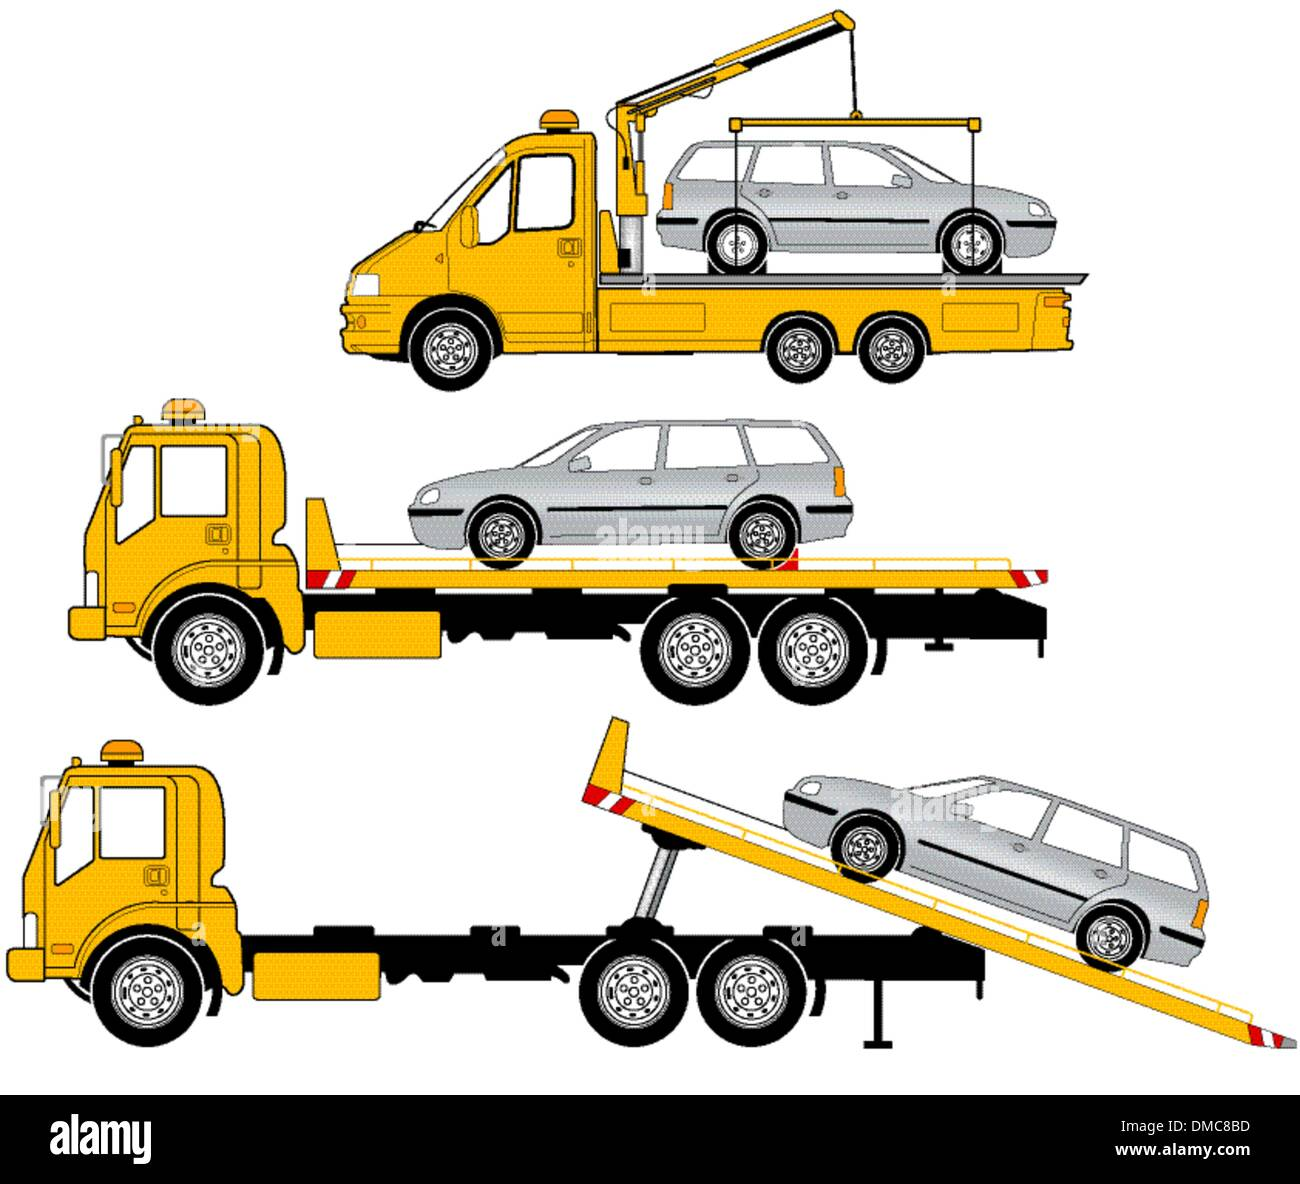 Tow truck - Stock Image